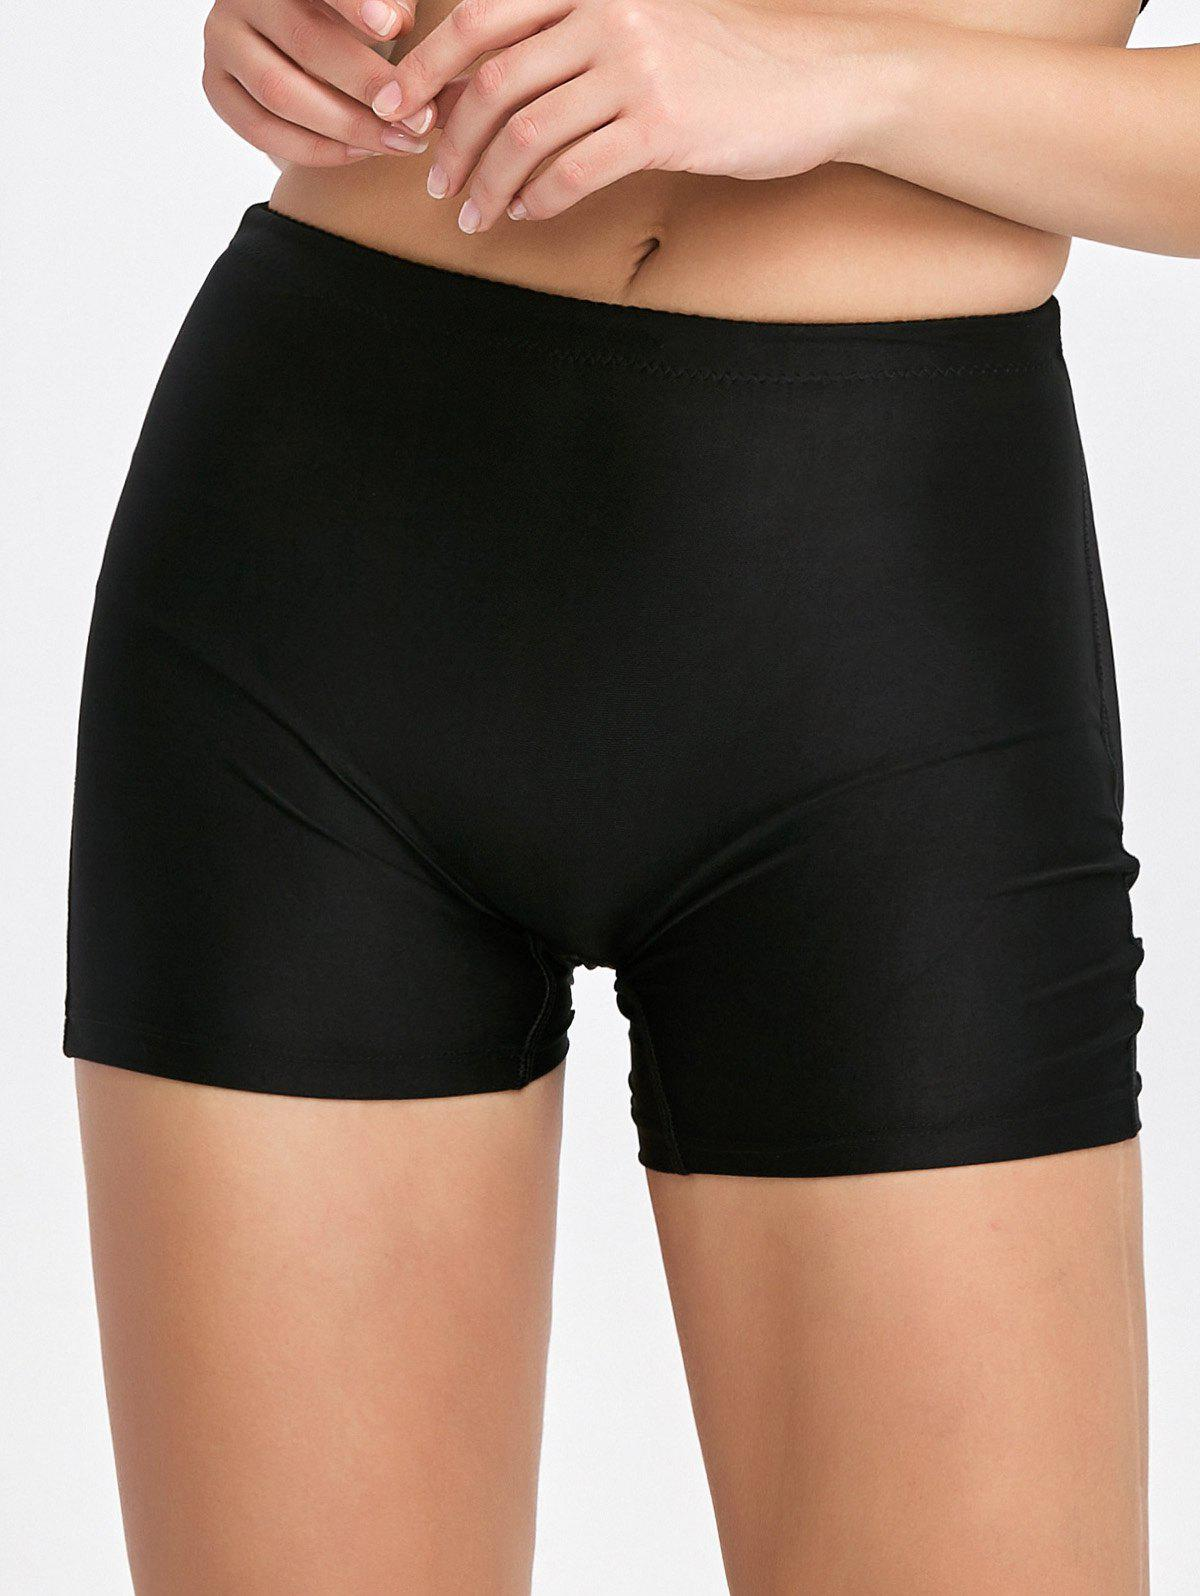 Padded Seamless Panties Boyshorts - BLACK 2XL